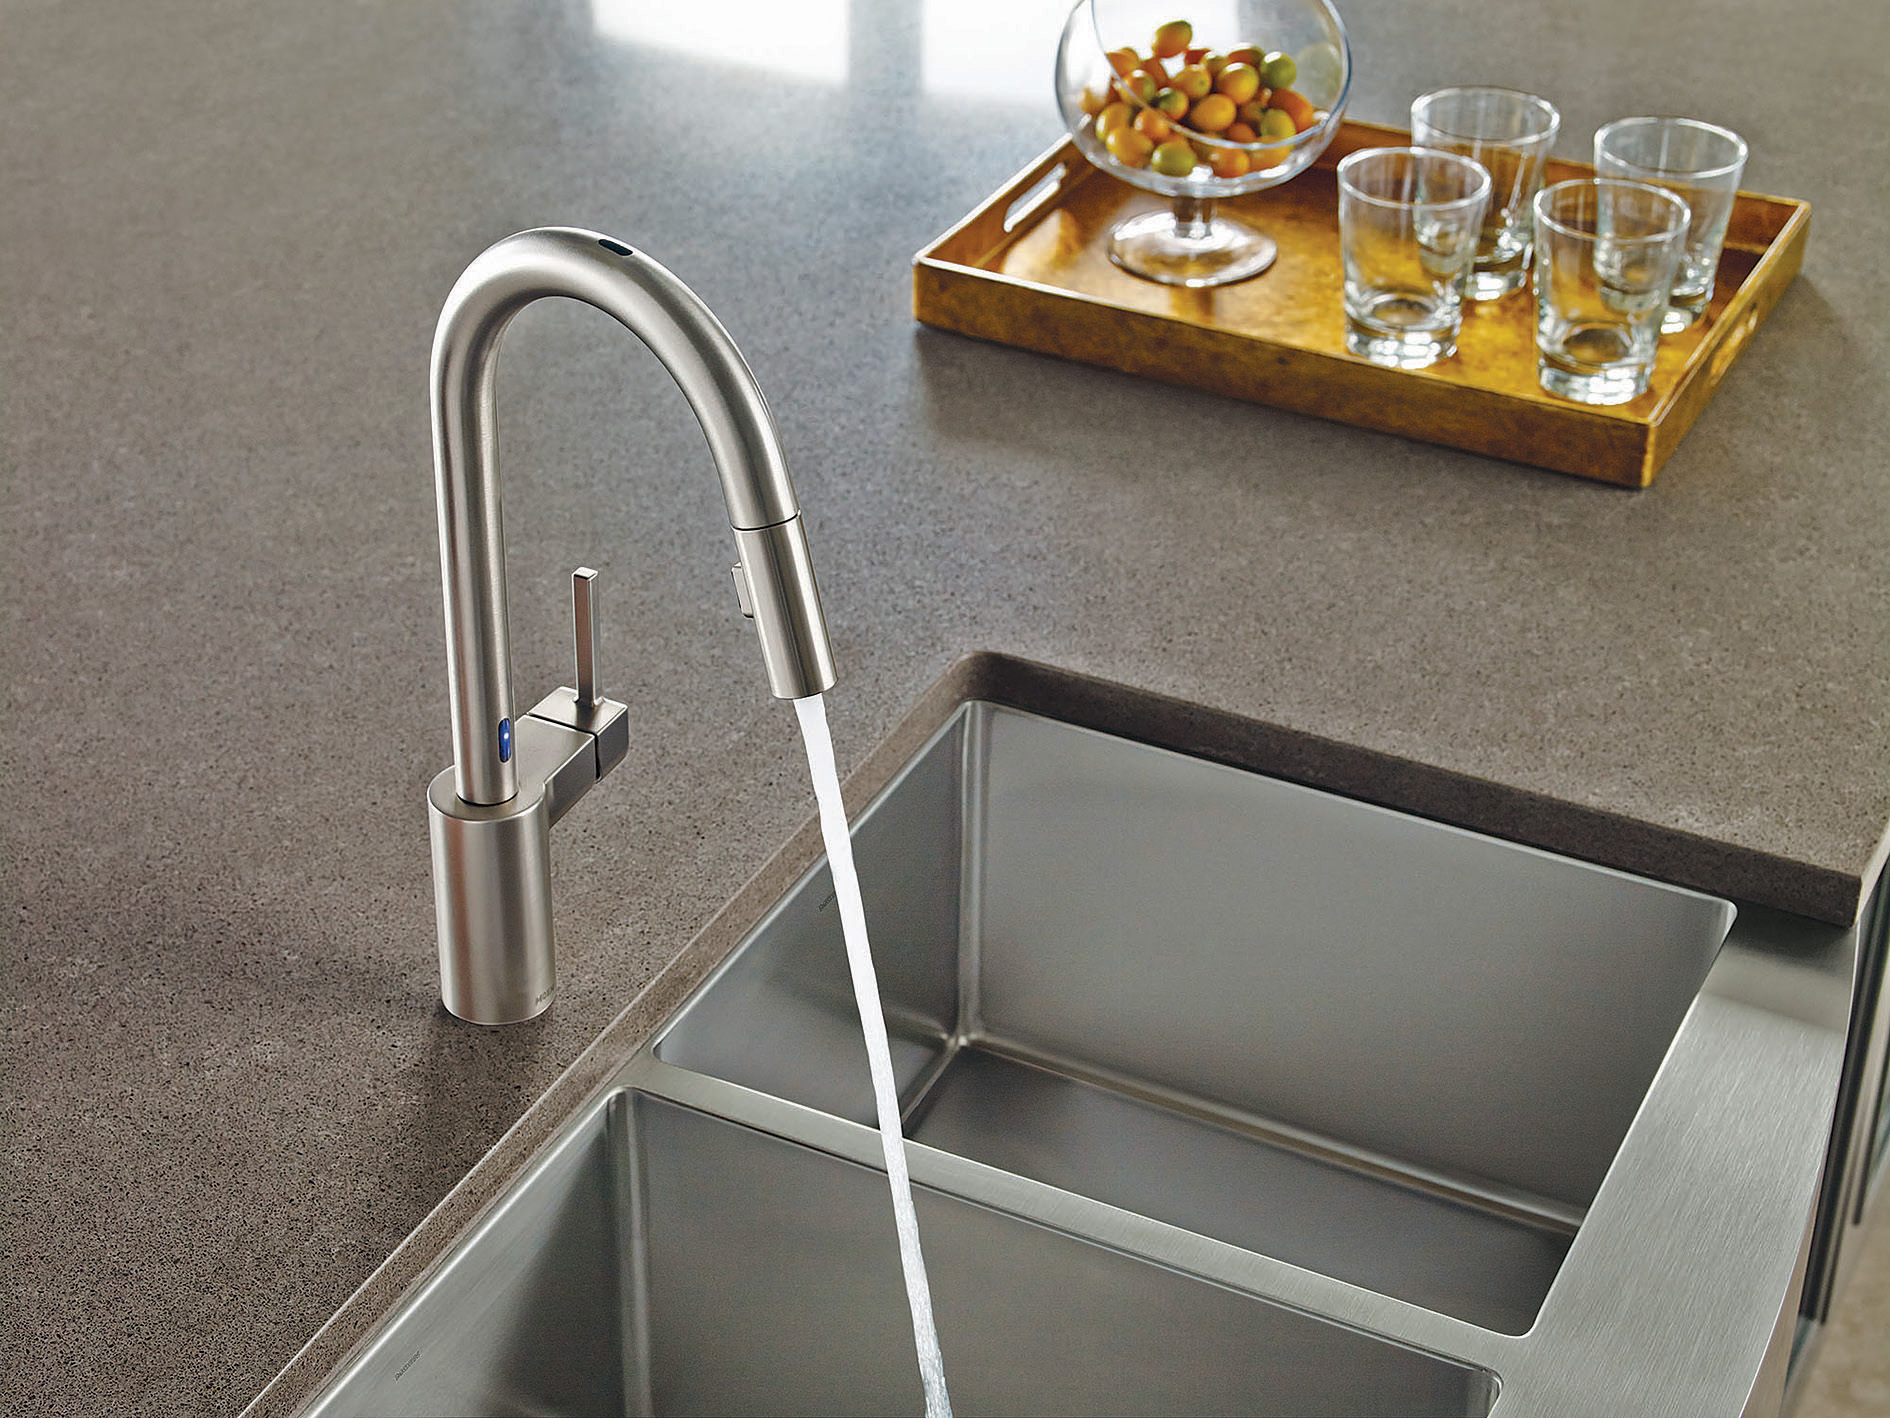 kitchen faucets with touch technology ierie com cassidy single handle pull down kitchen faucet with